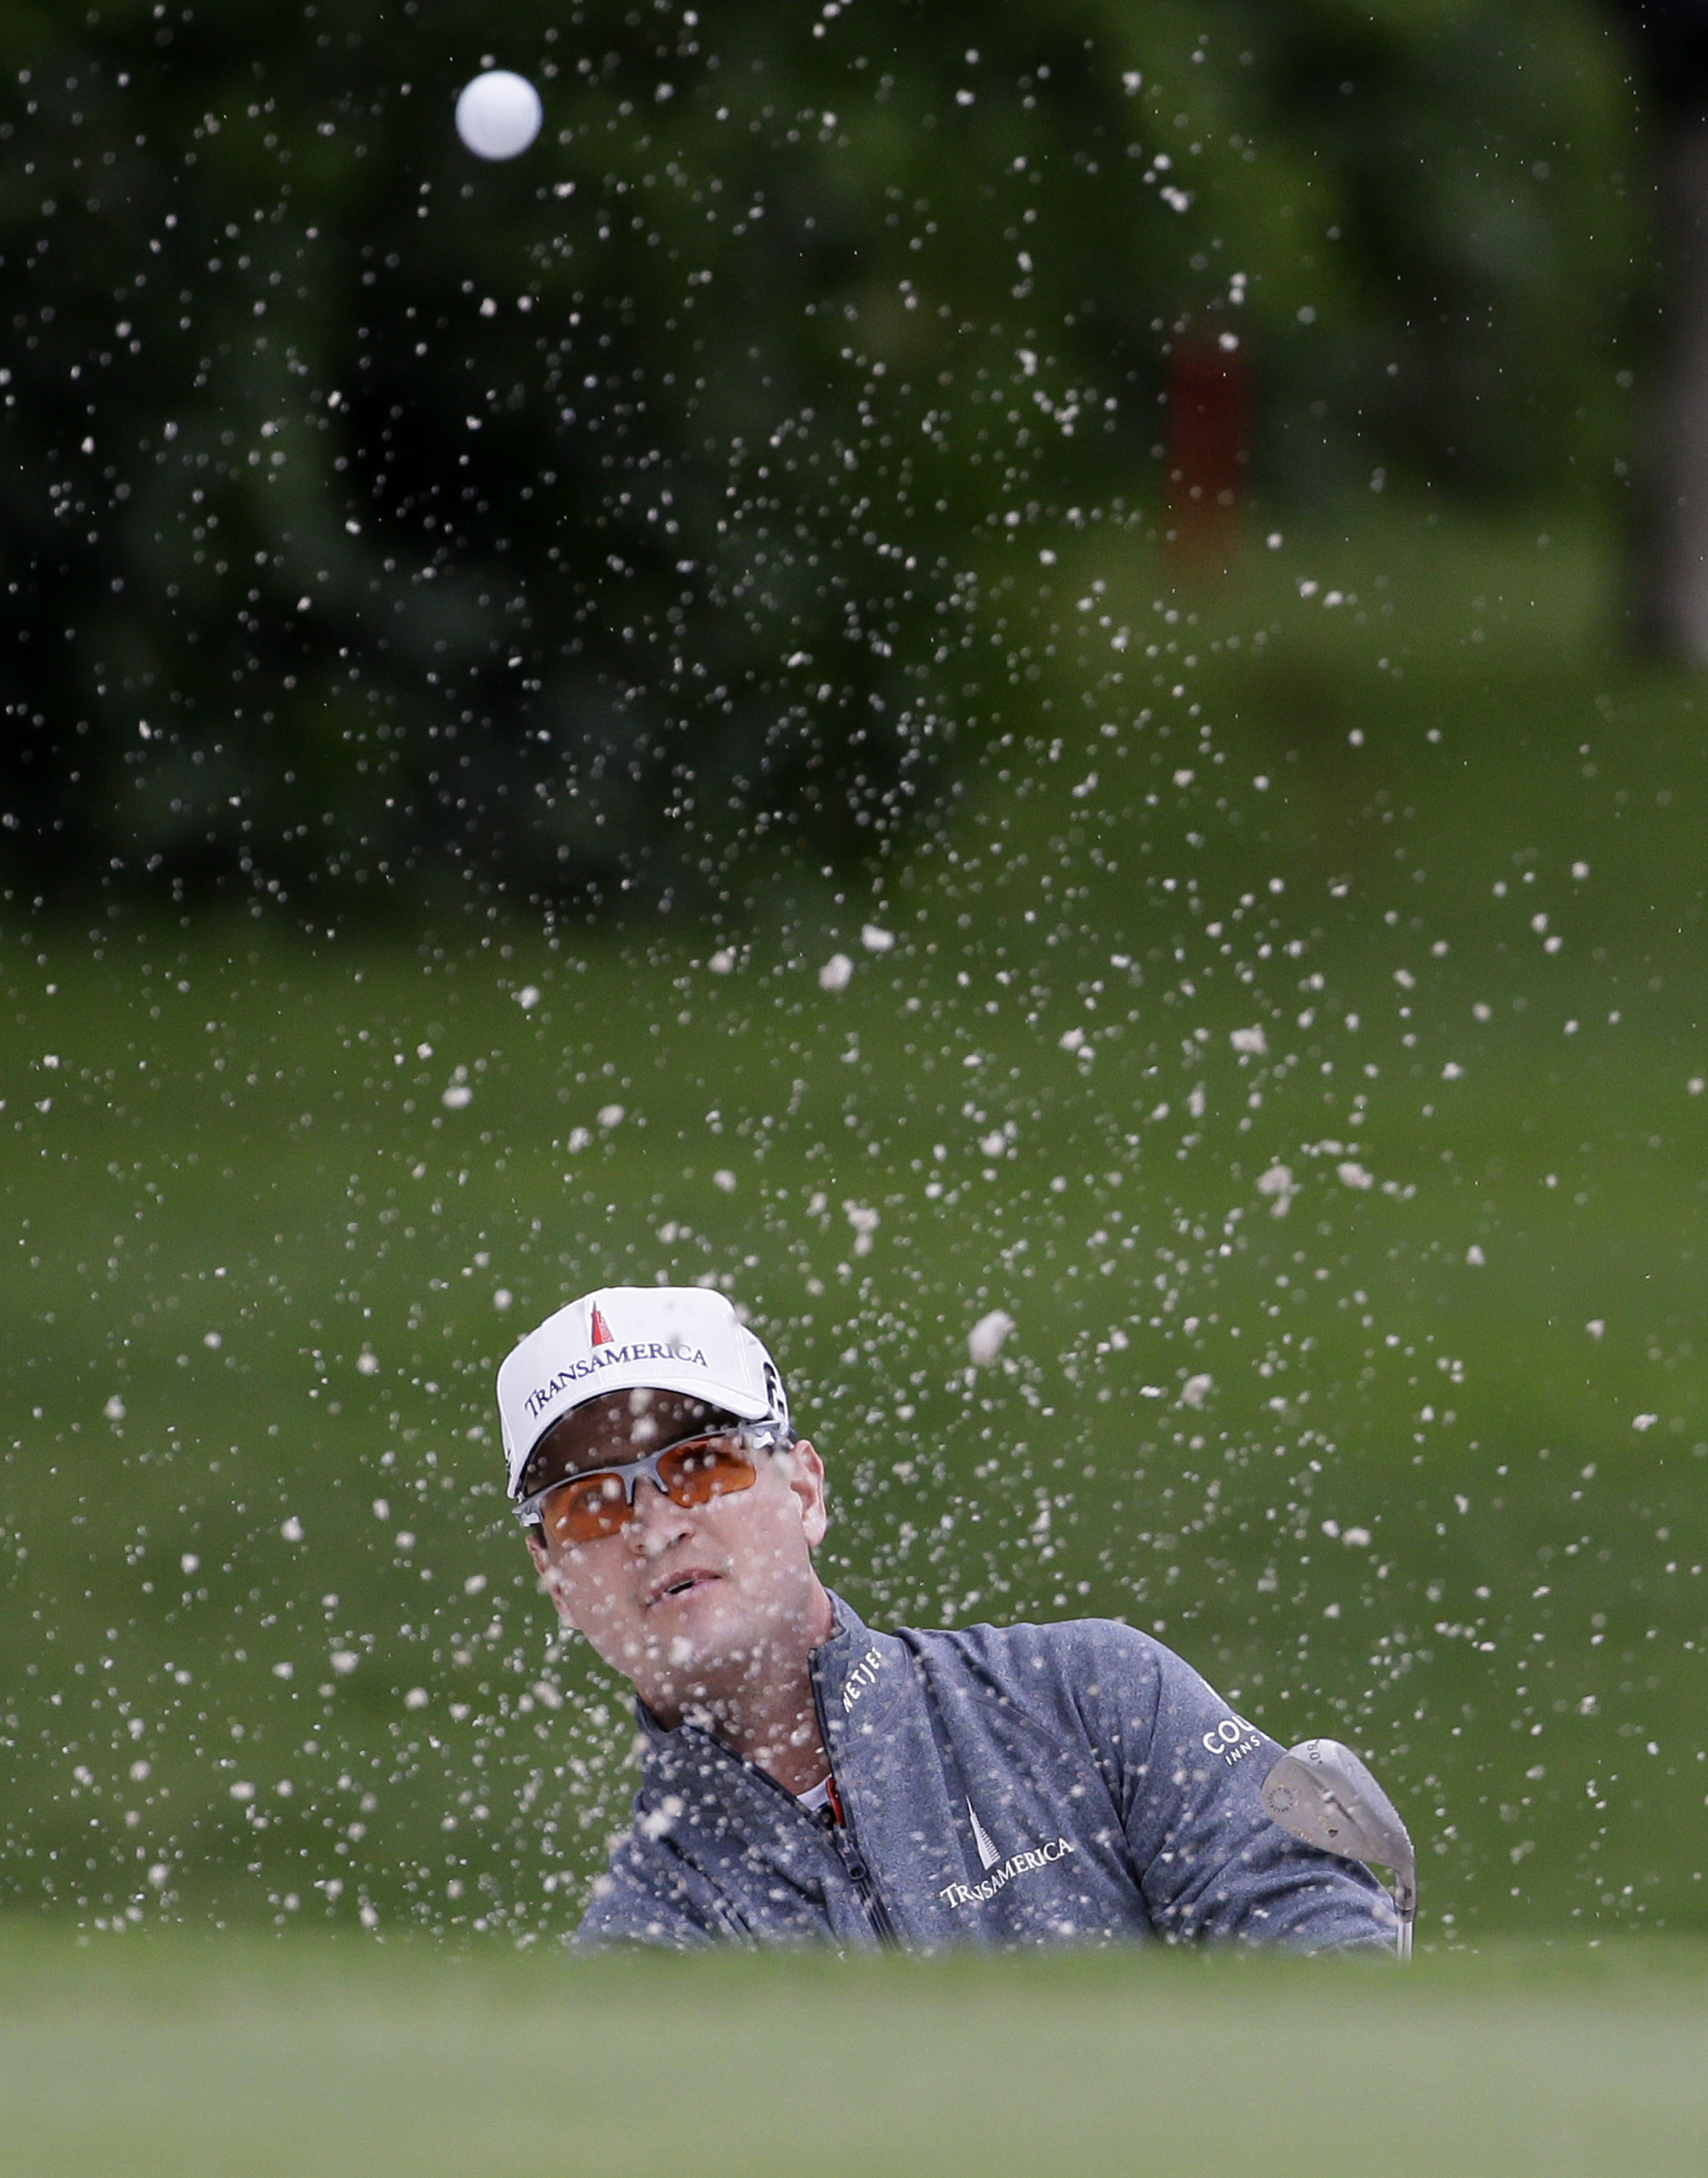 Zach Johnson hits from a sand trap on the 11th hole during the first round of the Colonial golf tournament, Thursday, May 21, 2015, in Fort Worth, Texas. (AP Photo/LM Otero)